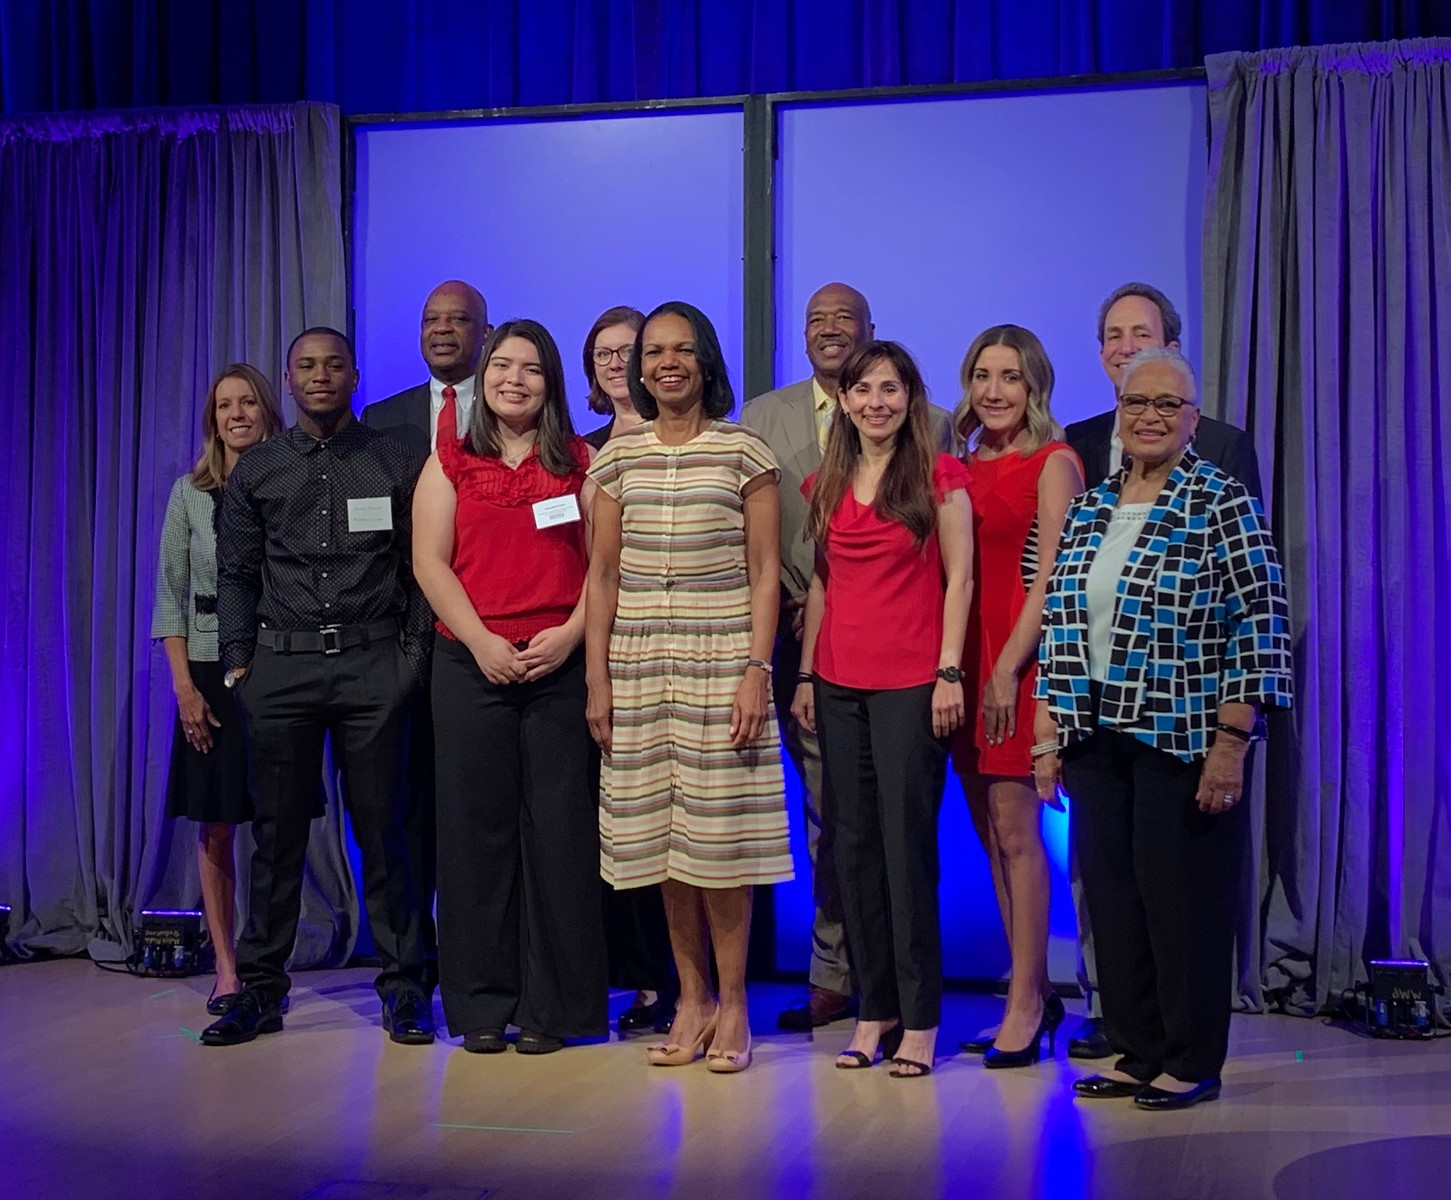 Bakersfield College delegation receives the 2019 Dr. John W. Rice Diversity and Equity Award